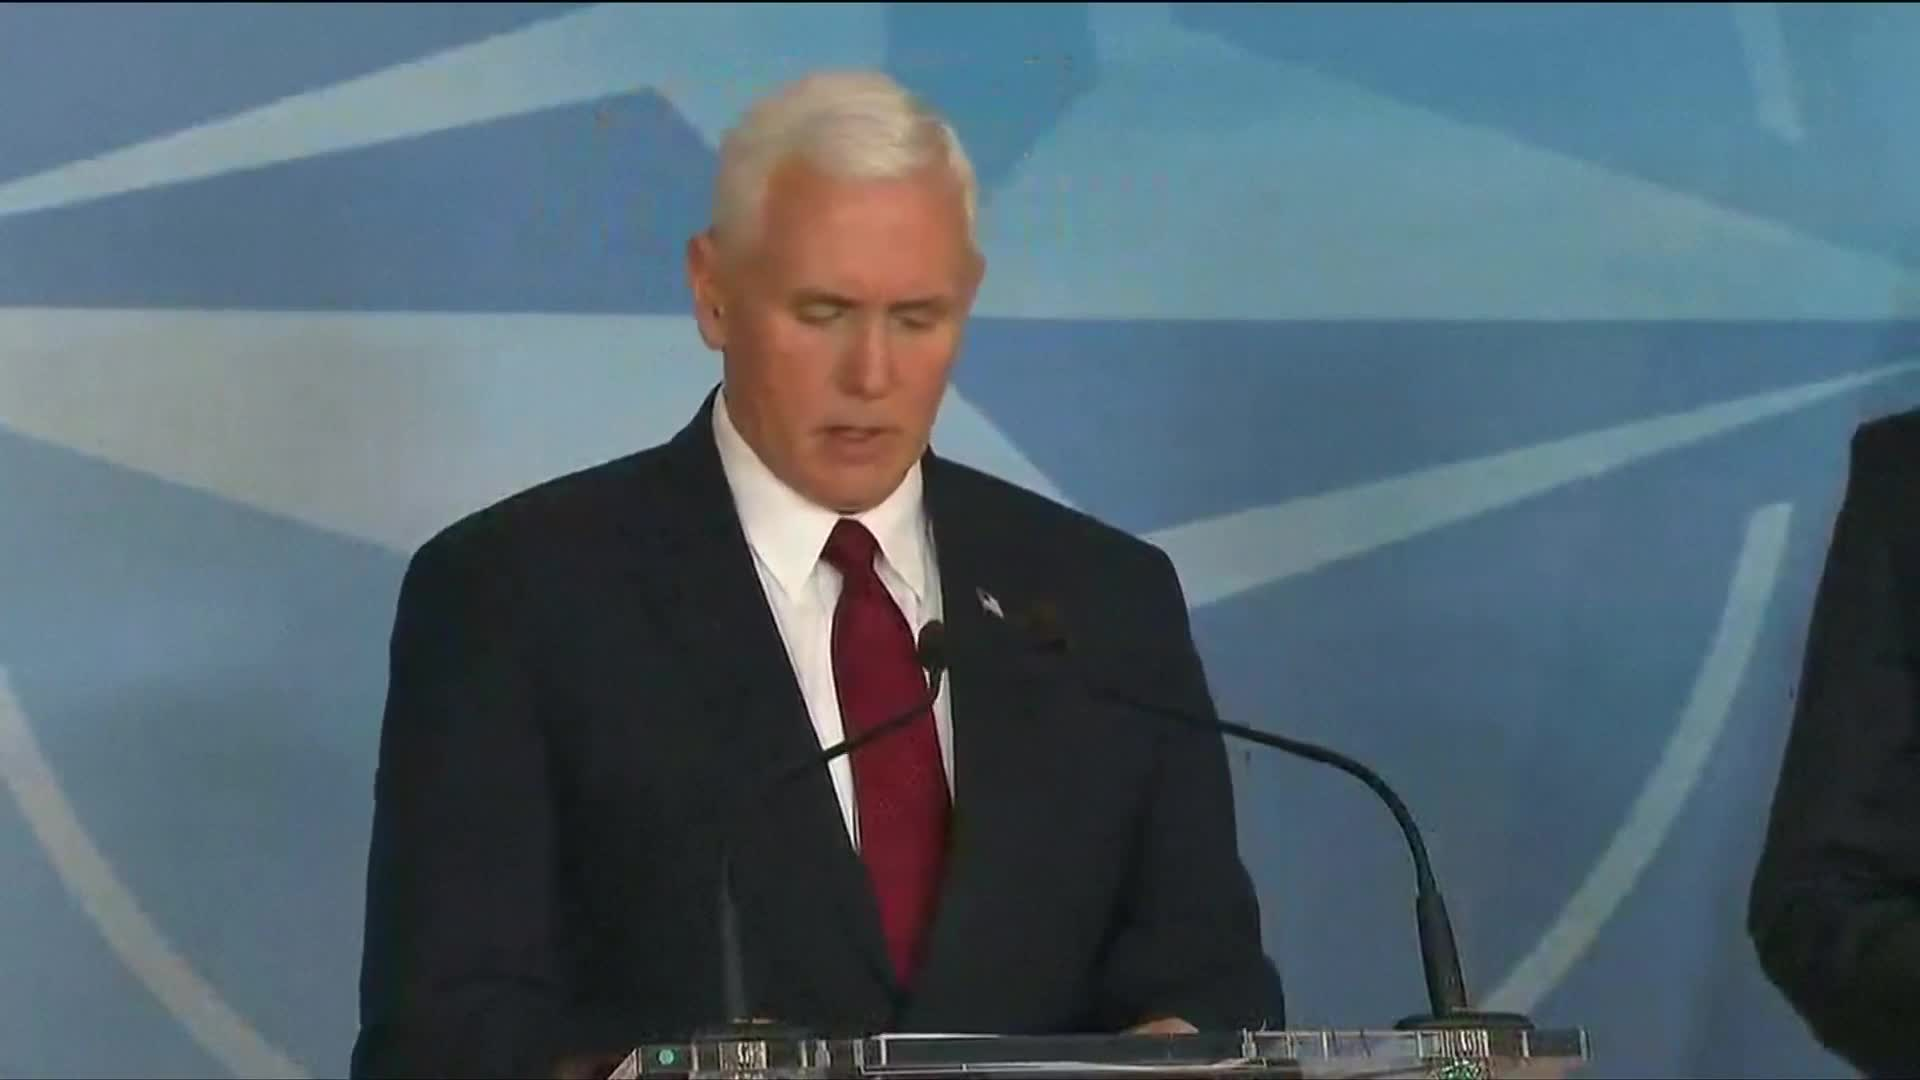 Trump wants NATO to step up defense spending: Pence